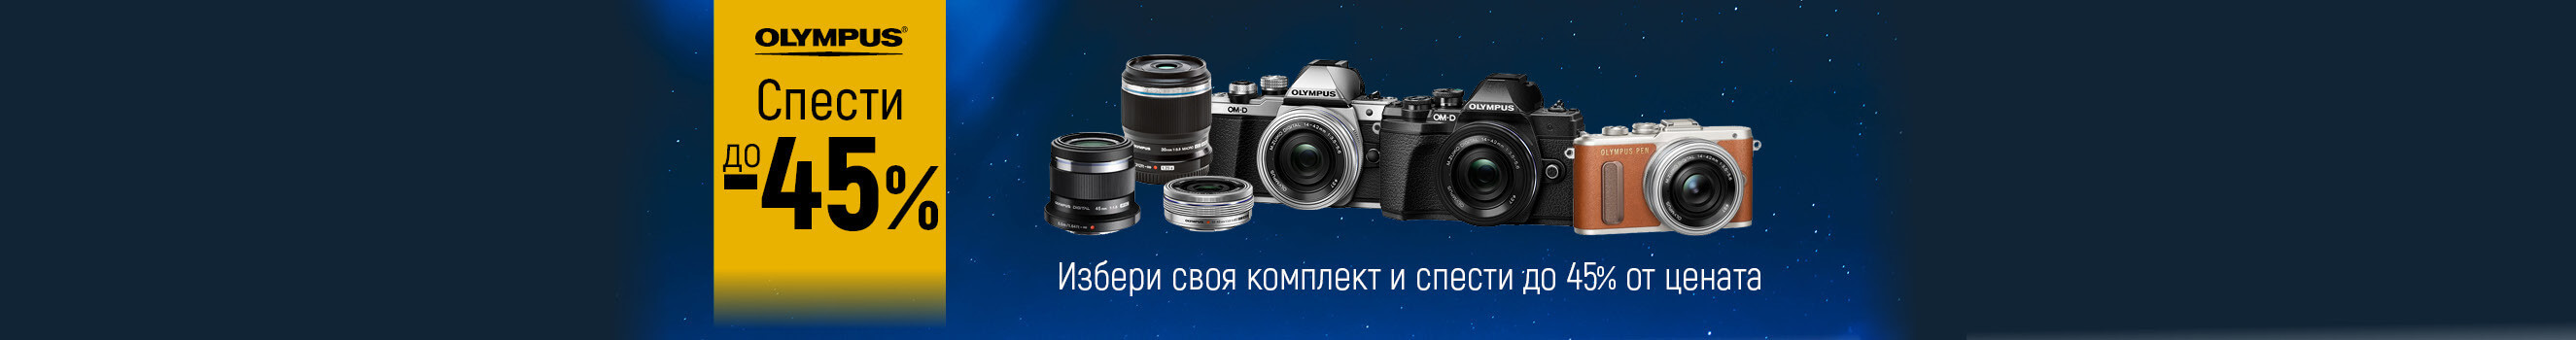 Olympus cameras in affordable kits with up to 45% discount